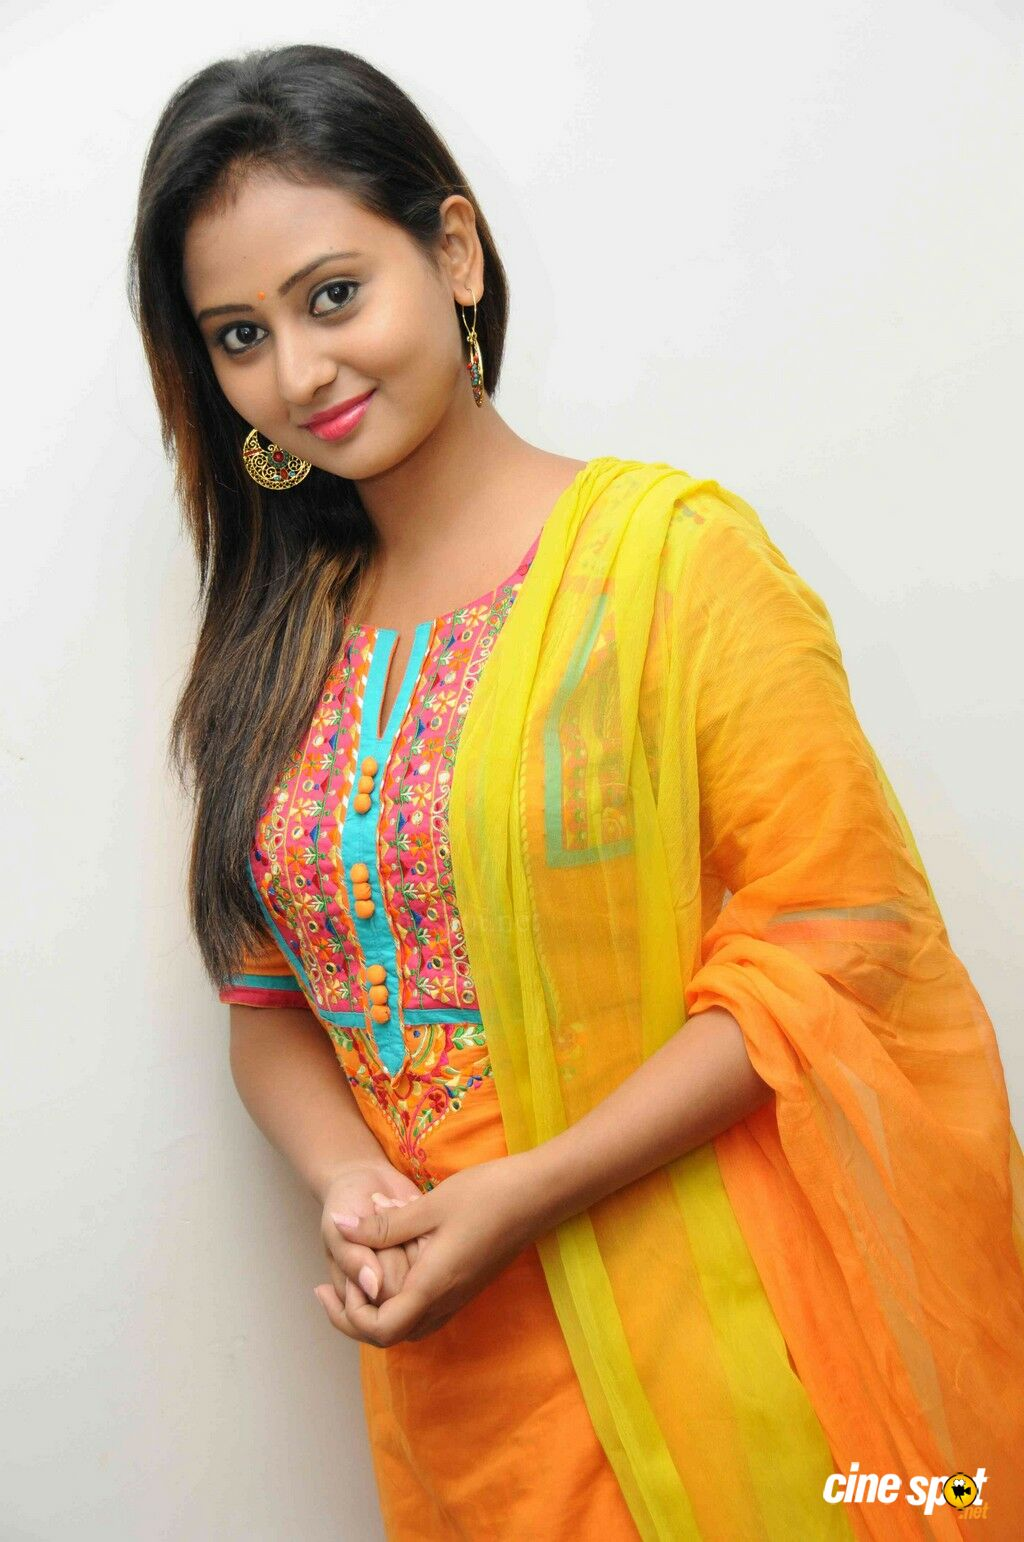 Amulya At Ram Leela Audio Release - Mammootty In August 15 , HD Wallpaper & Backgrounds